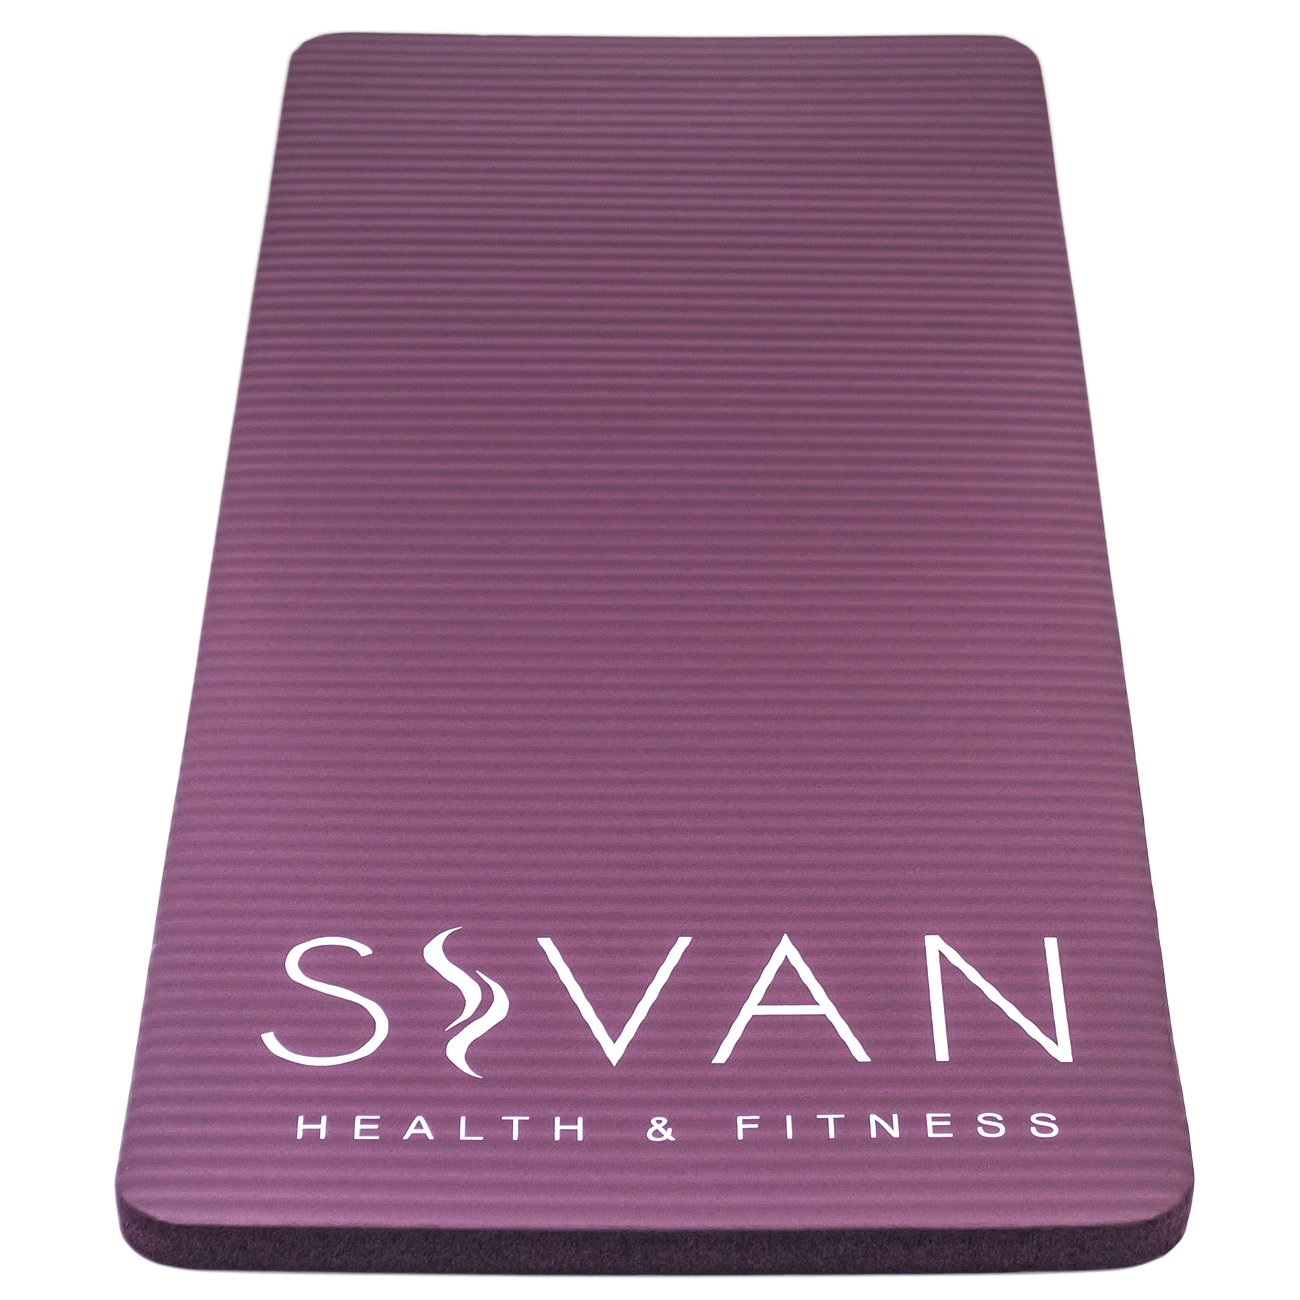 Includes Cushion Pressure Points for Fitness Exercise Workout Great for Knees Pilates and More Floor Exercises and Elbows While Doing Yoga Wrists Sivan Health and Fitness Yoga Knee Pad